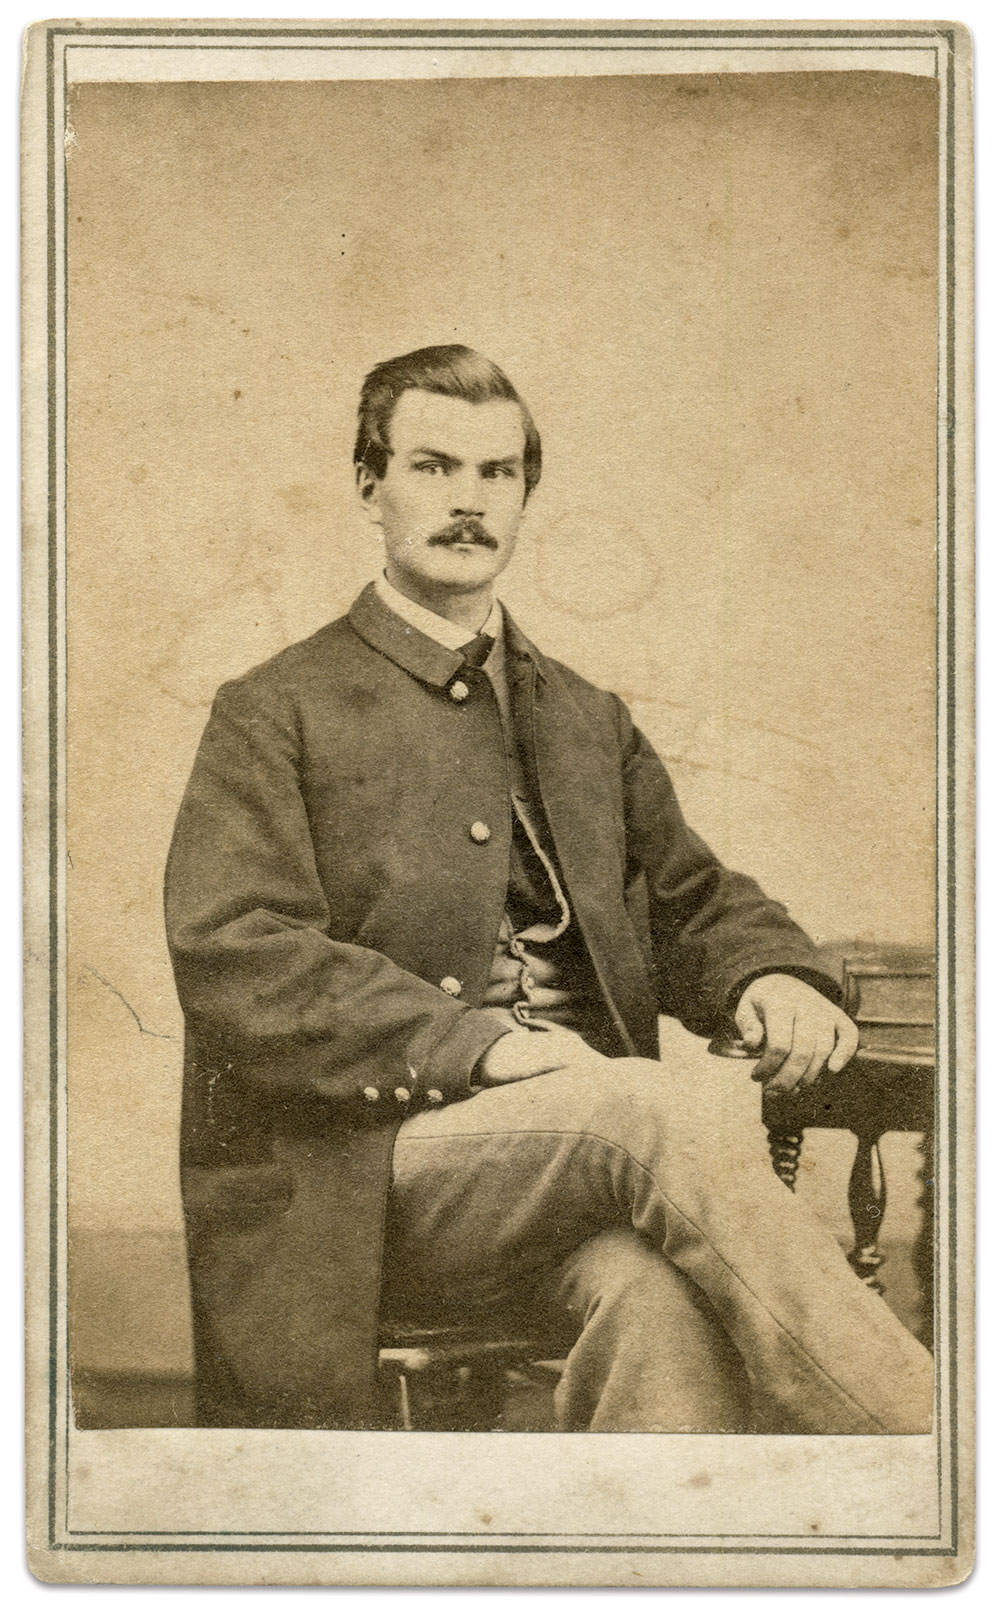 Carte de visite by S.F. Sterlin and W.W. Culver of Woodstock, Vt. John Gibson Collection.